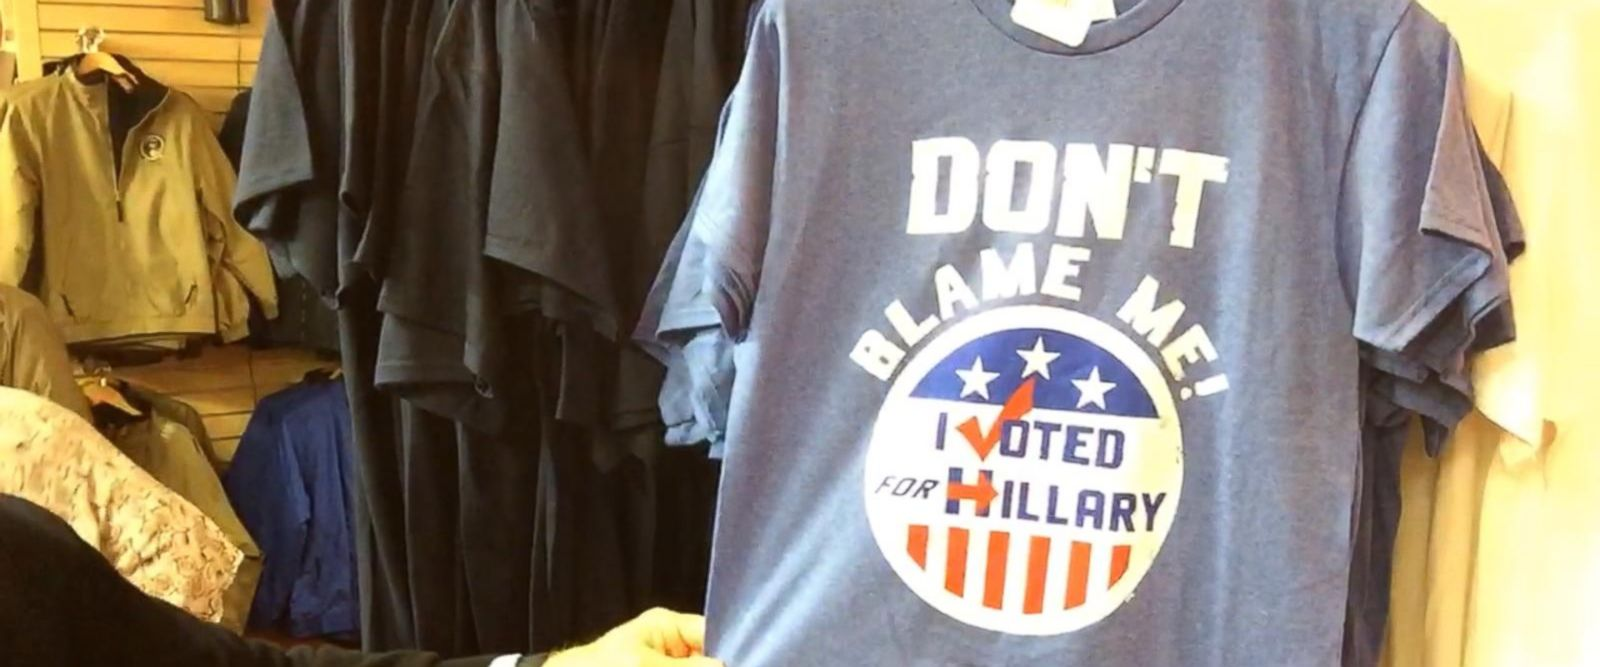 VIDEO: White House Gifts Selling Hillary Clinton Inauguration Merch on Clearance